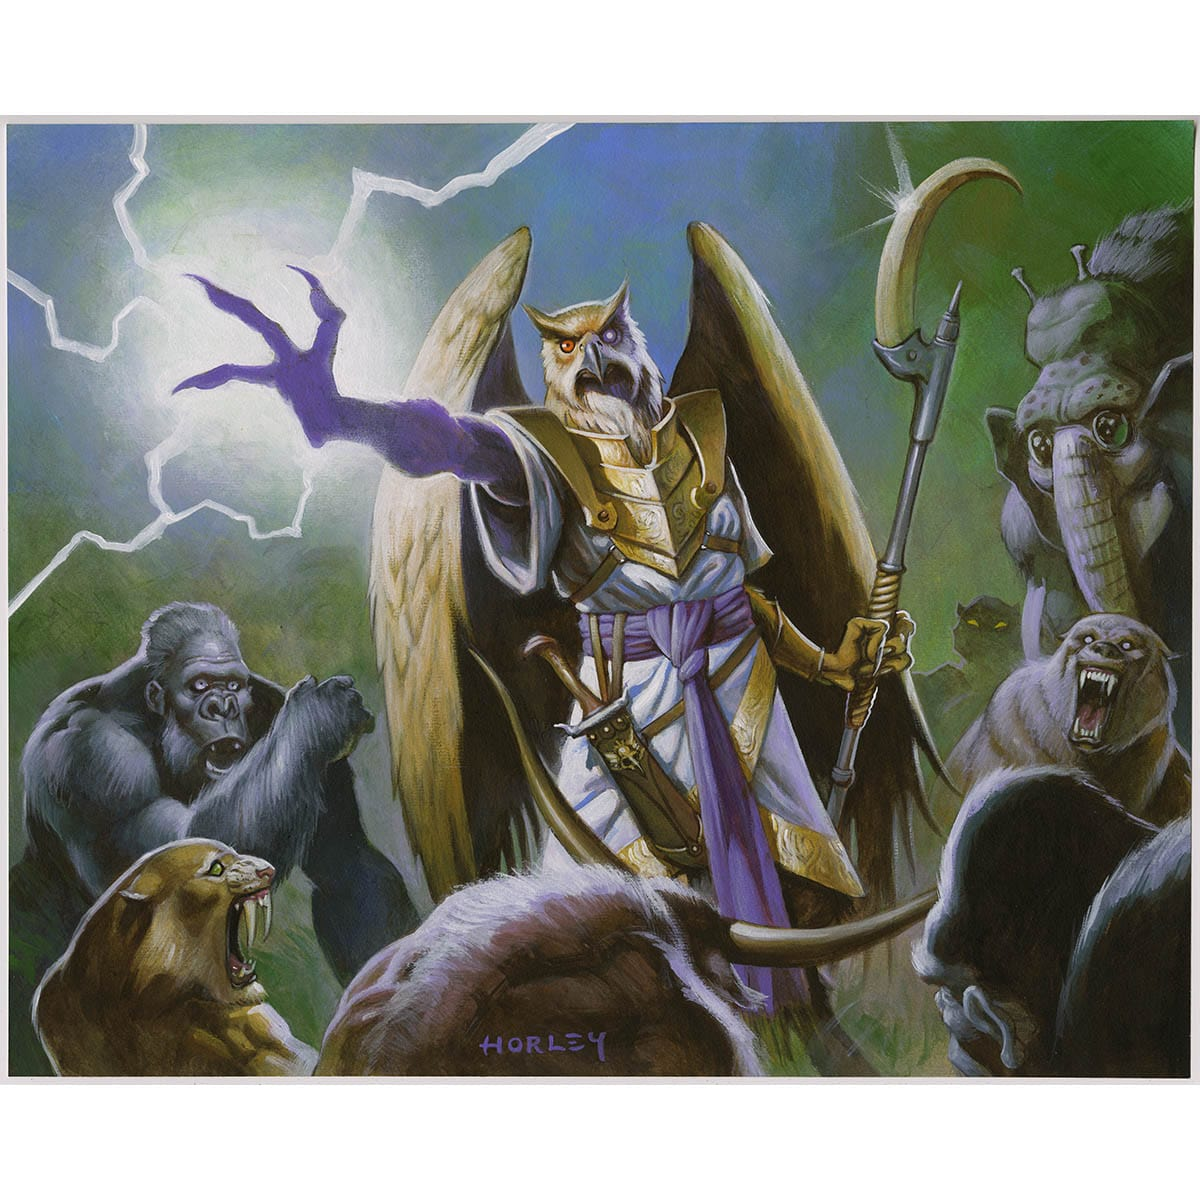 Unquestioned Authority Print - Print - Original Magic Art - Accessories for Magic the Gathering and other card games